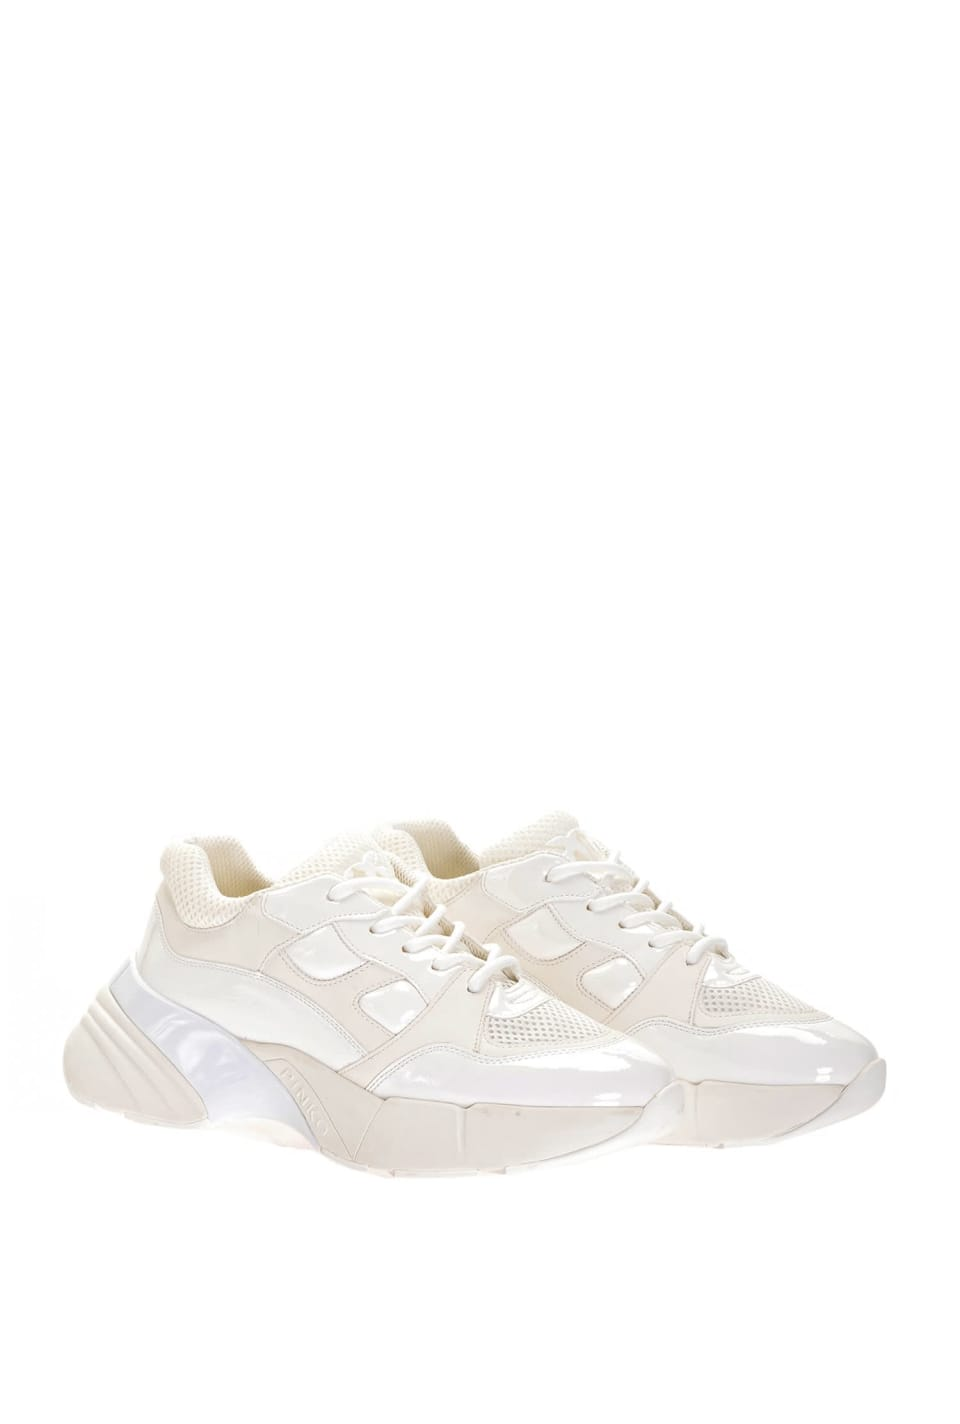 Shoes To Rock Classic sneakers - Pinko